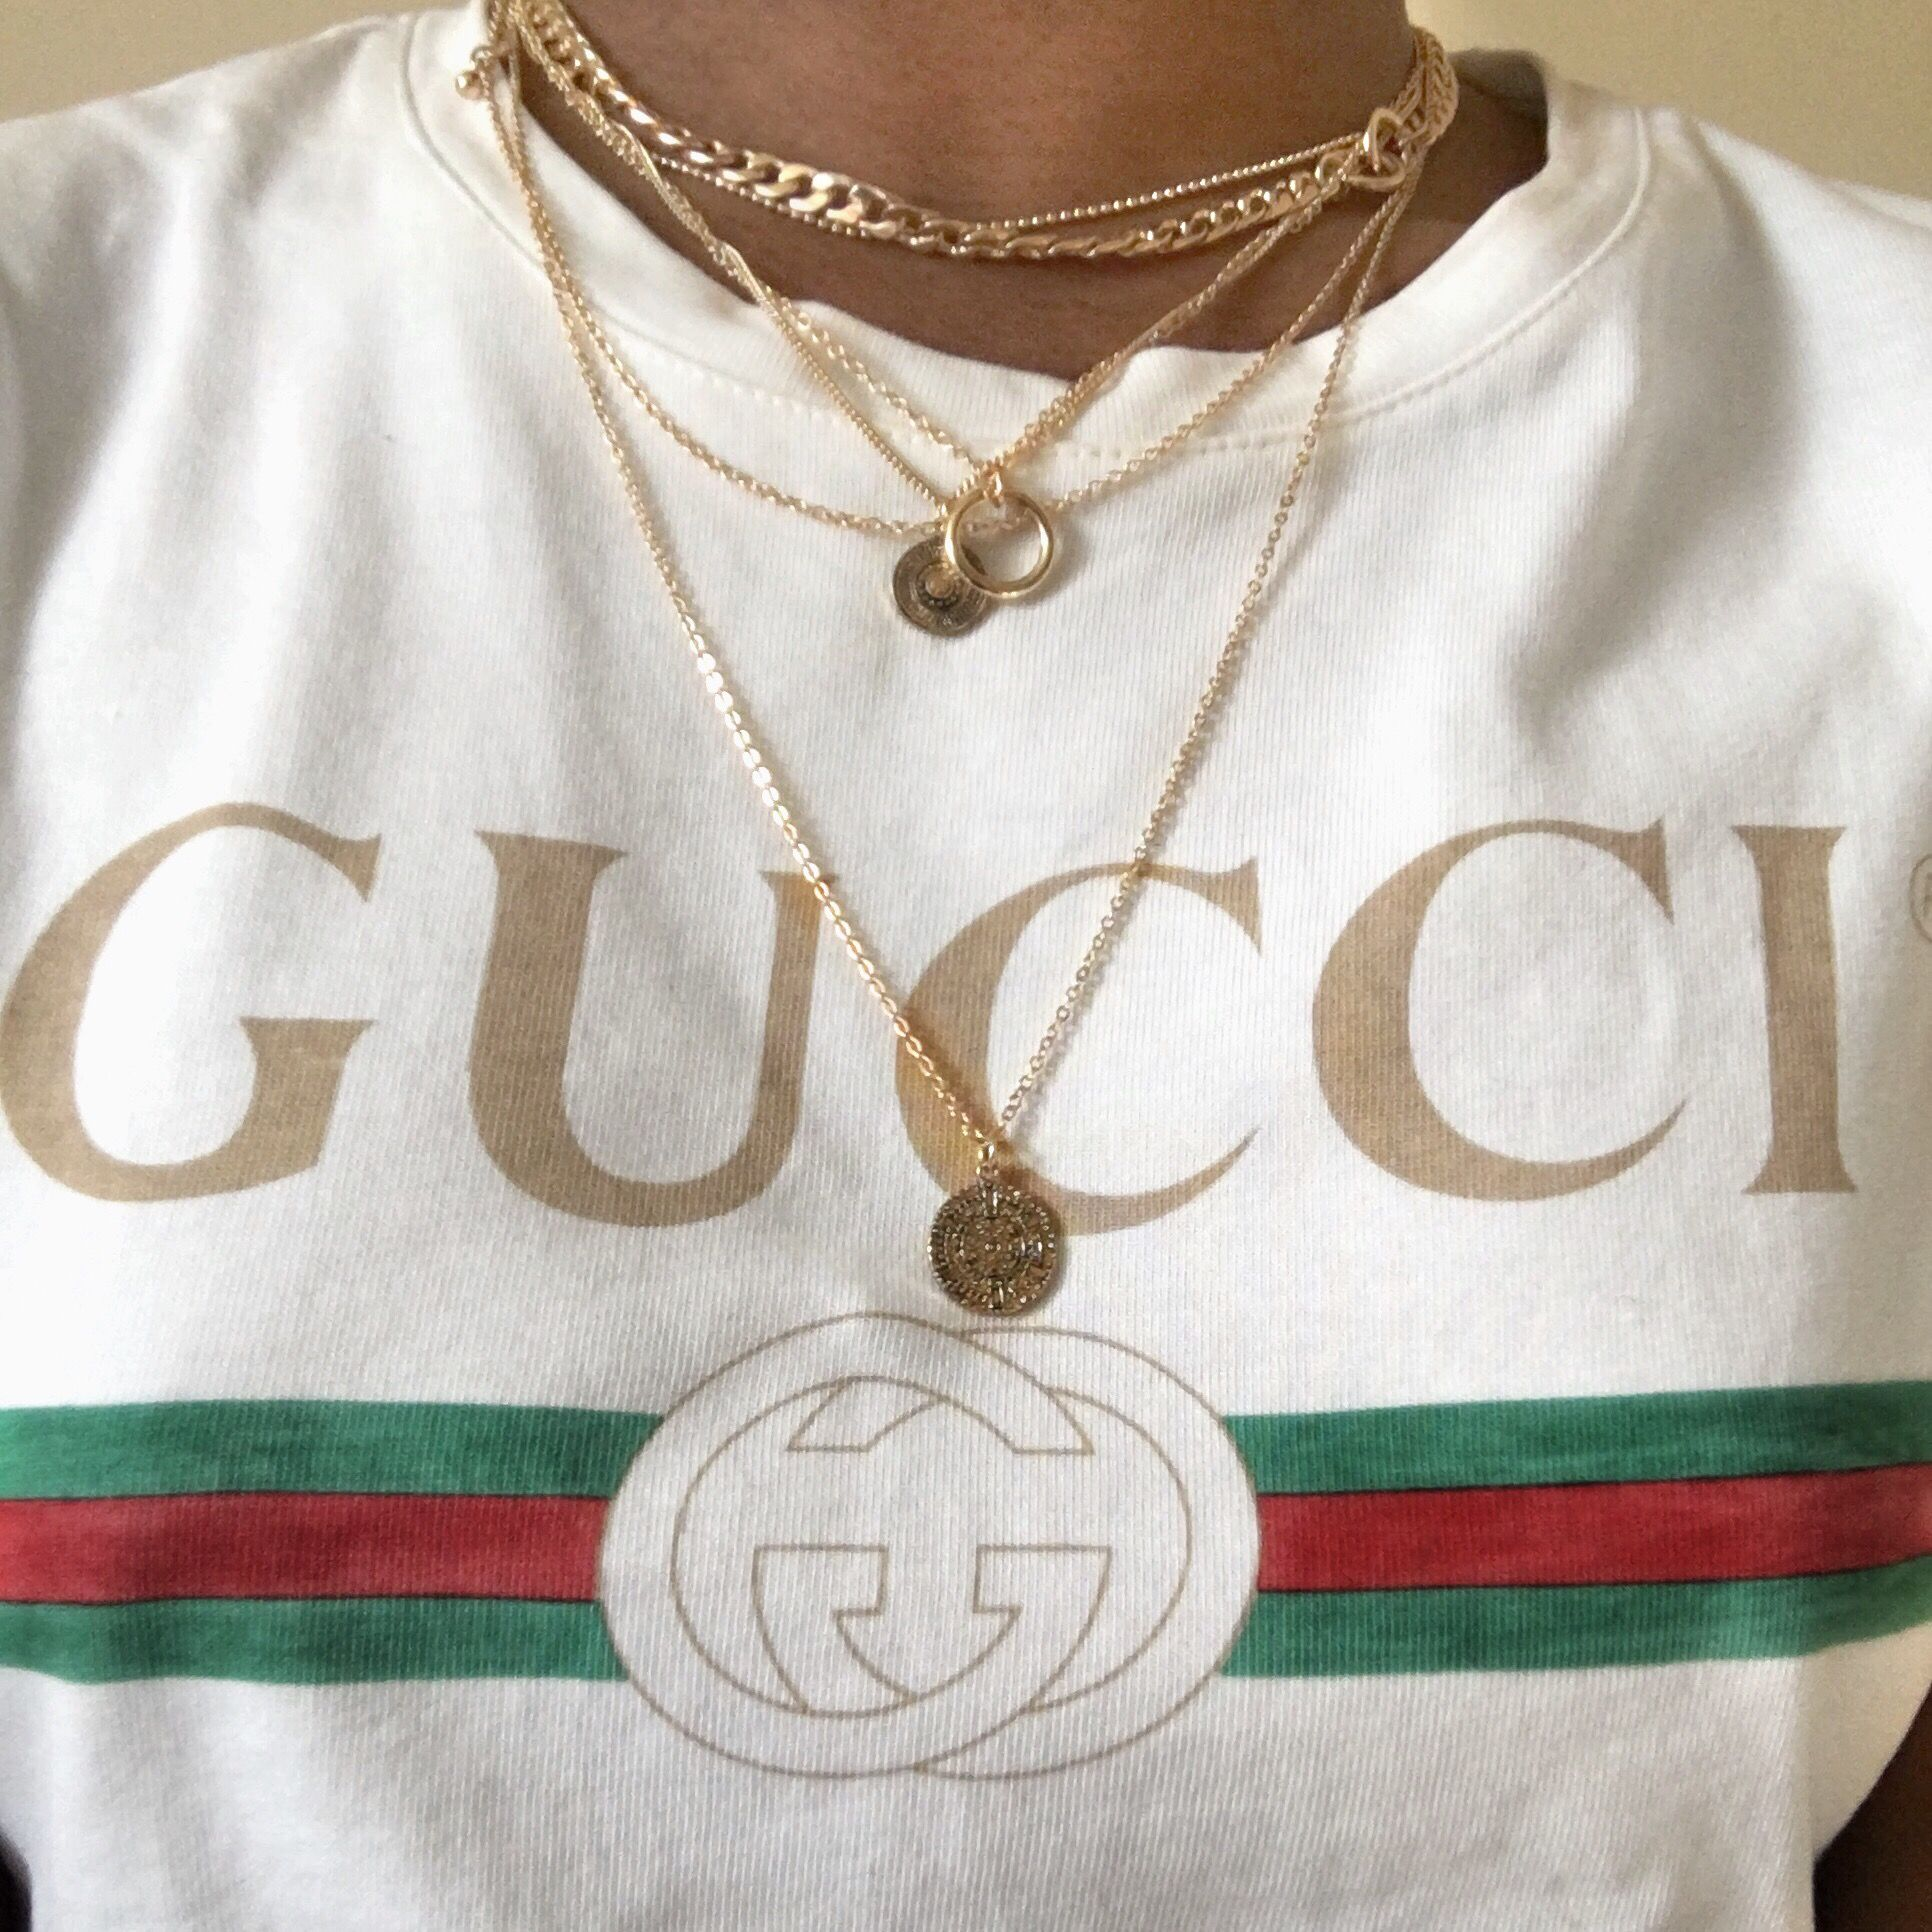 40187177fc7 Gucci white t shirt ft necklace chain layering.  surgeofstyle INSTAGRAM -  SURGEOFSTYLE